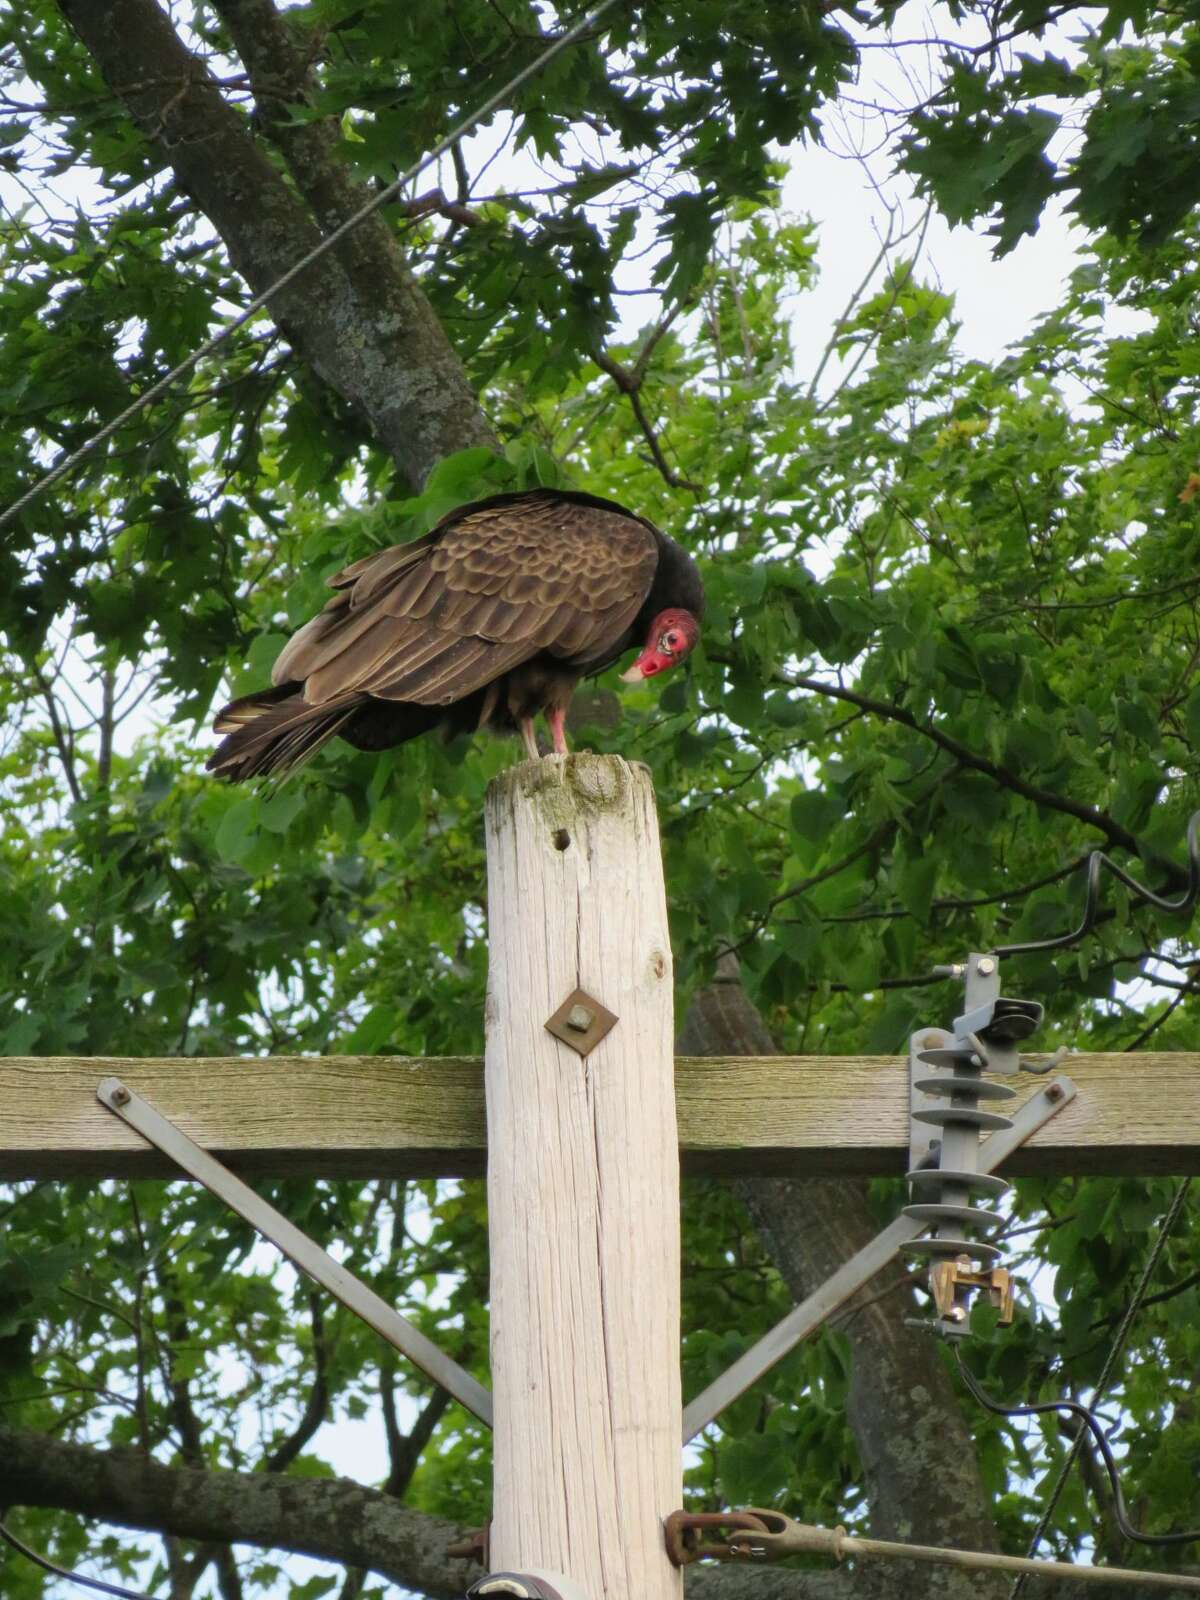 """Cliff Prewencki of Delmar says: """"As I was performing my usual lawn chores one recent evening, I was startled by the sudden presence of a flock of turkey vultures. One sat placidly on top of a nearby telephone pole while the others flitted among the trees or simply sat in silence on the branches. They must be shy creatures, for when my weeding took me just a couple of feet closer they vanished as silently as they came."""""""